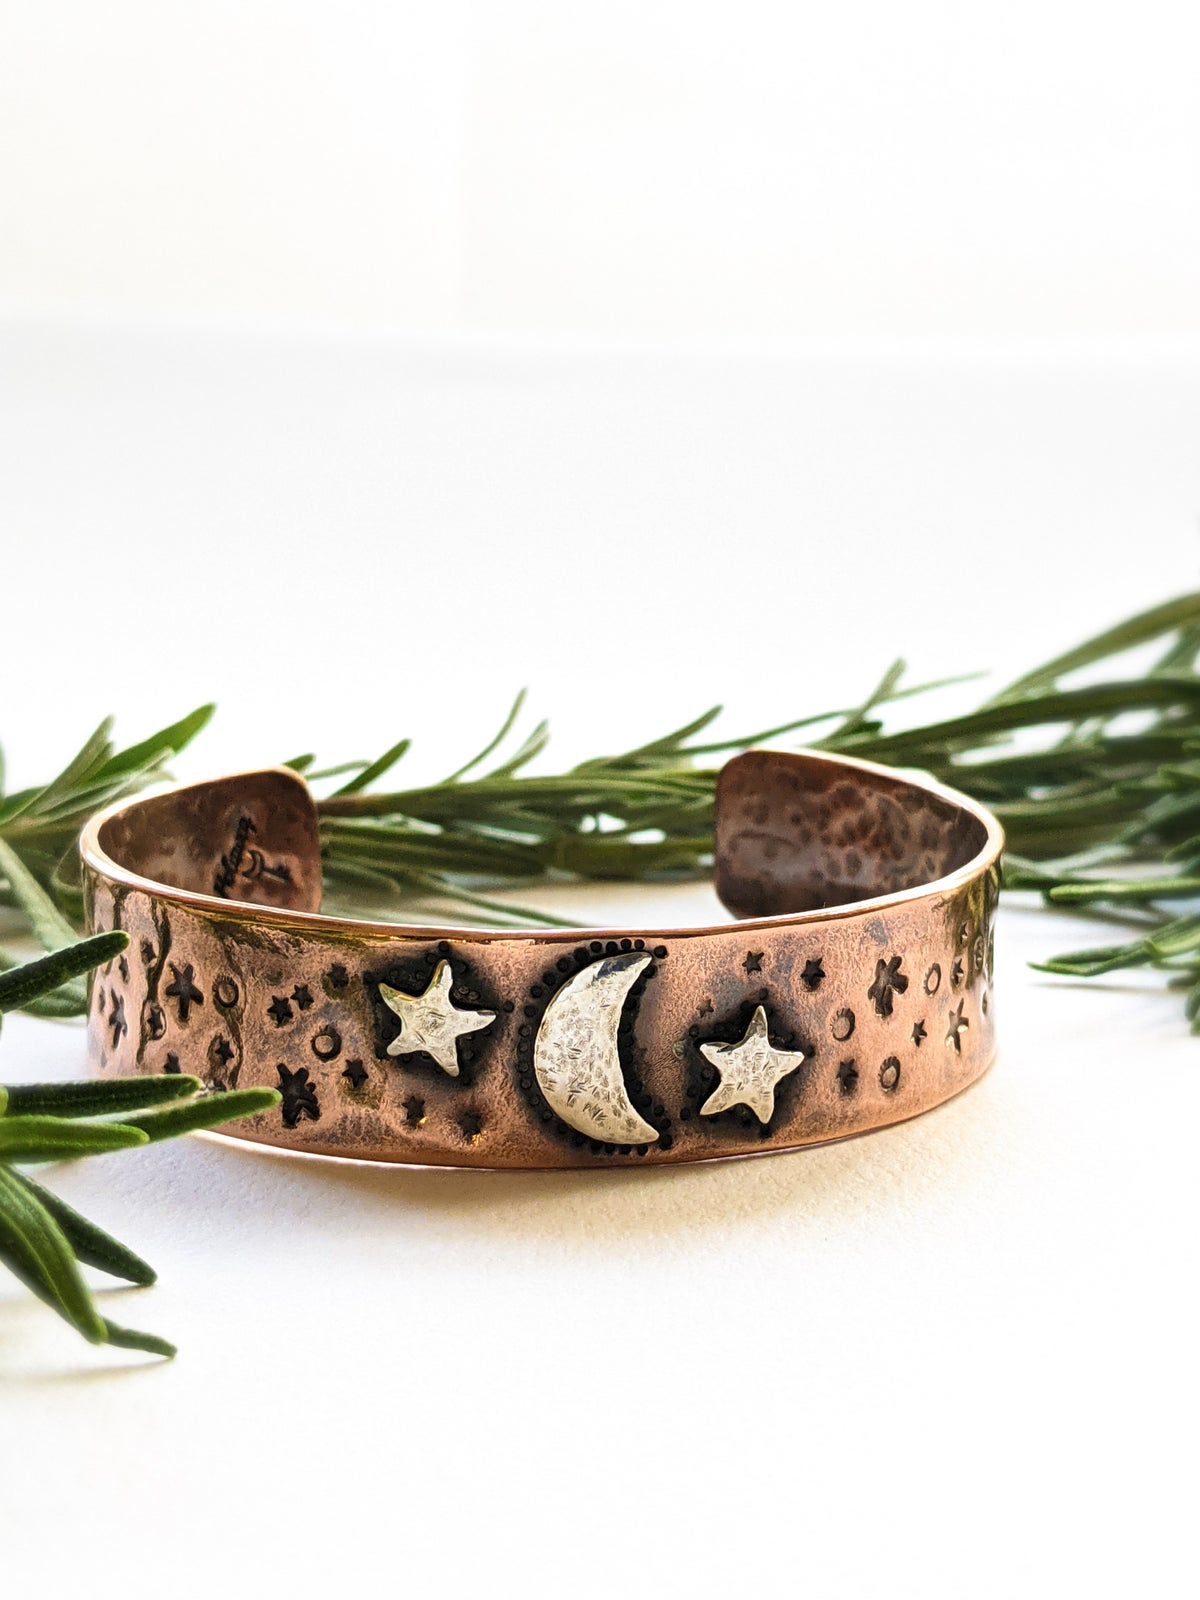 Moon & Stars textured recycled copper & silver small cuff bangle